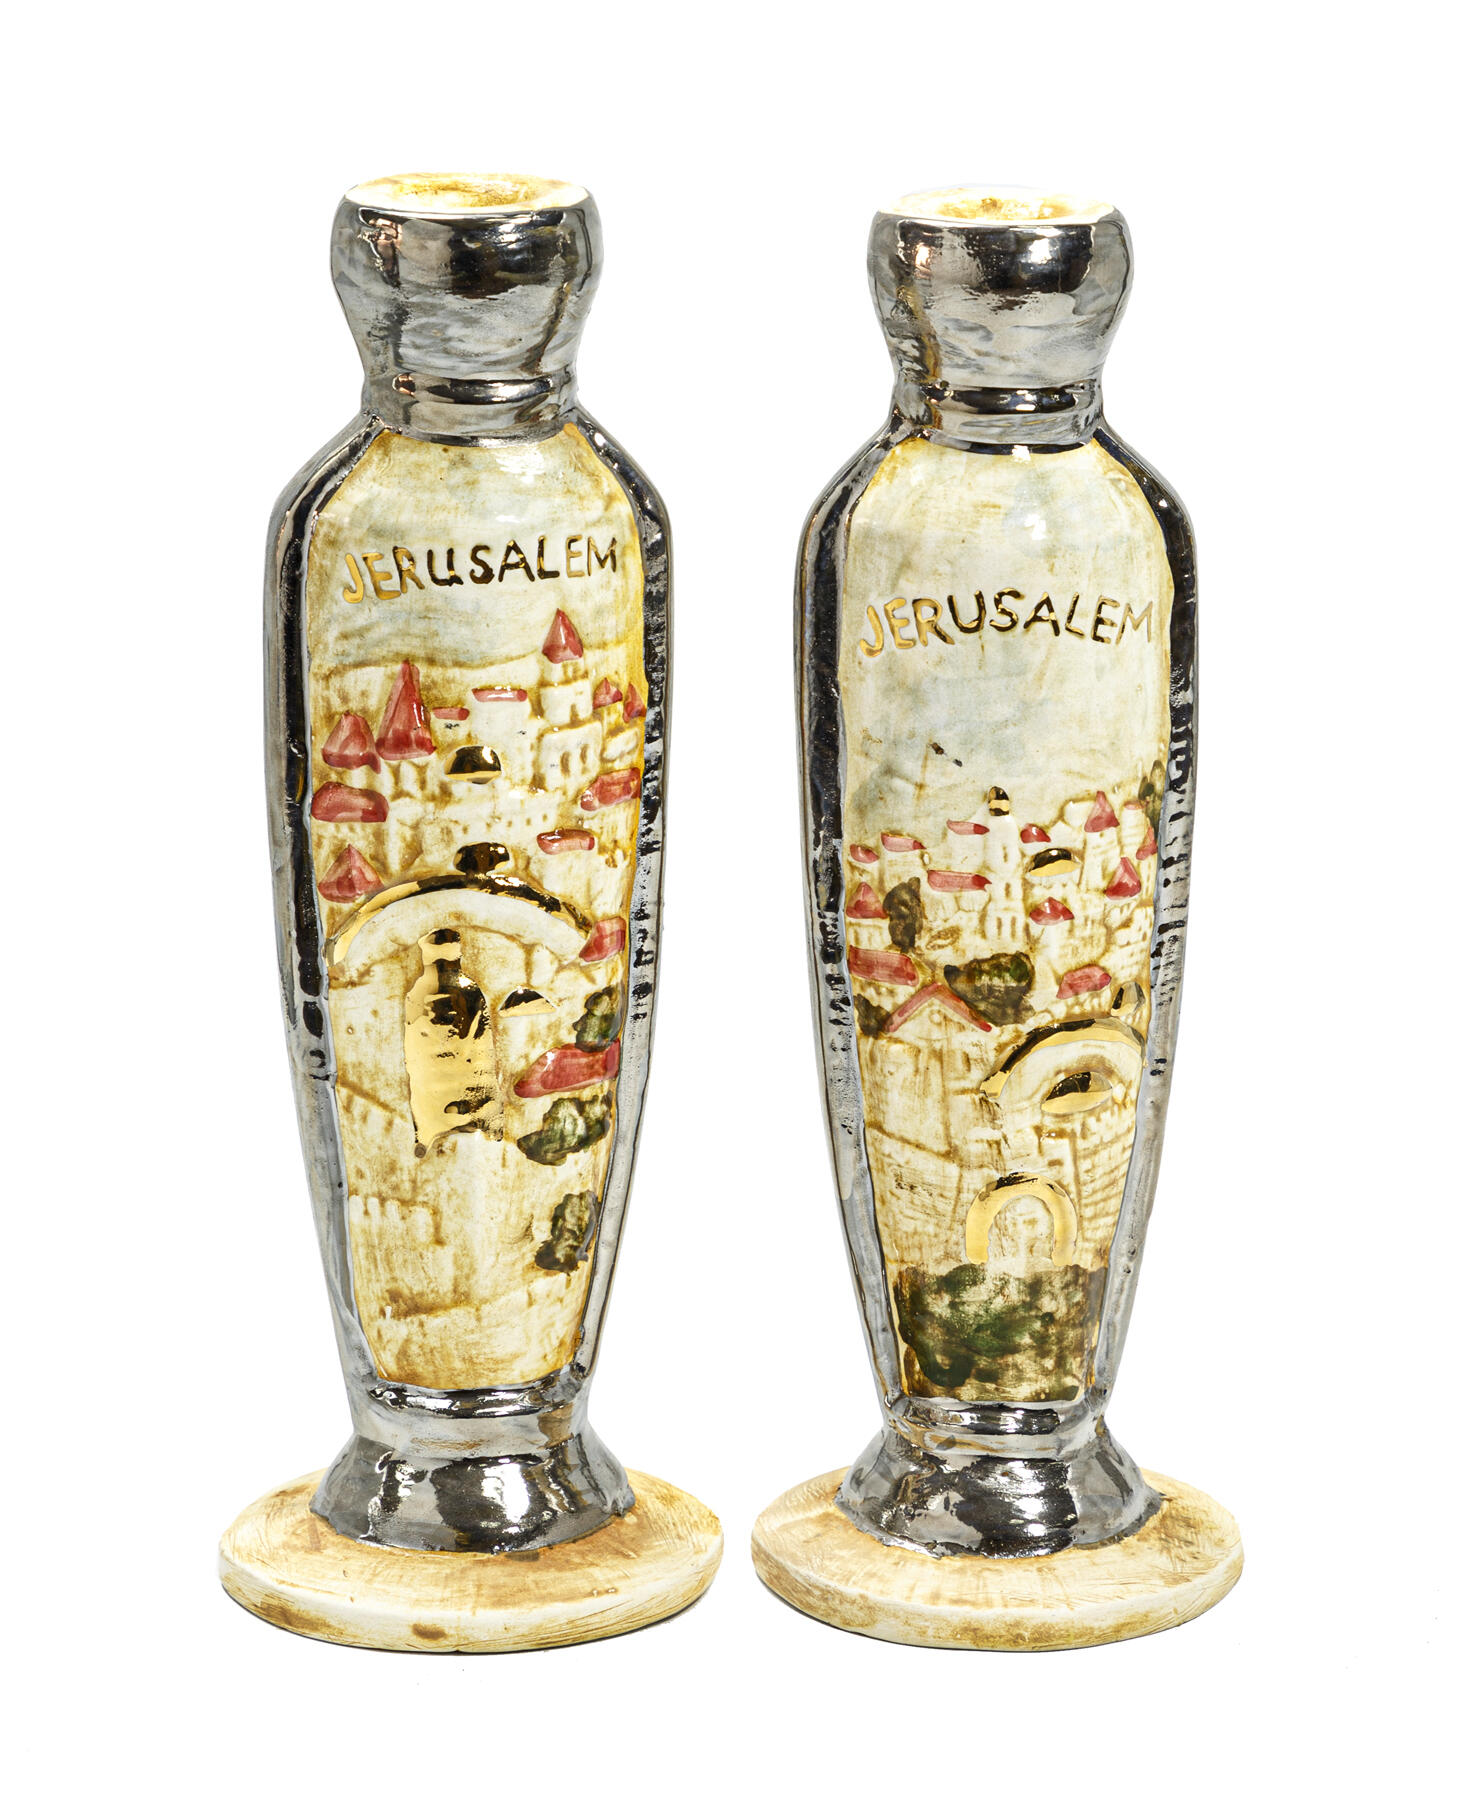 CANDLESTICKS OF JERUSALEM size: 28x10.5x10.5mm